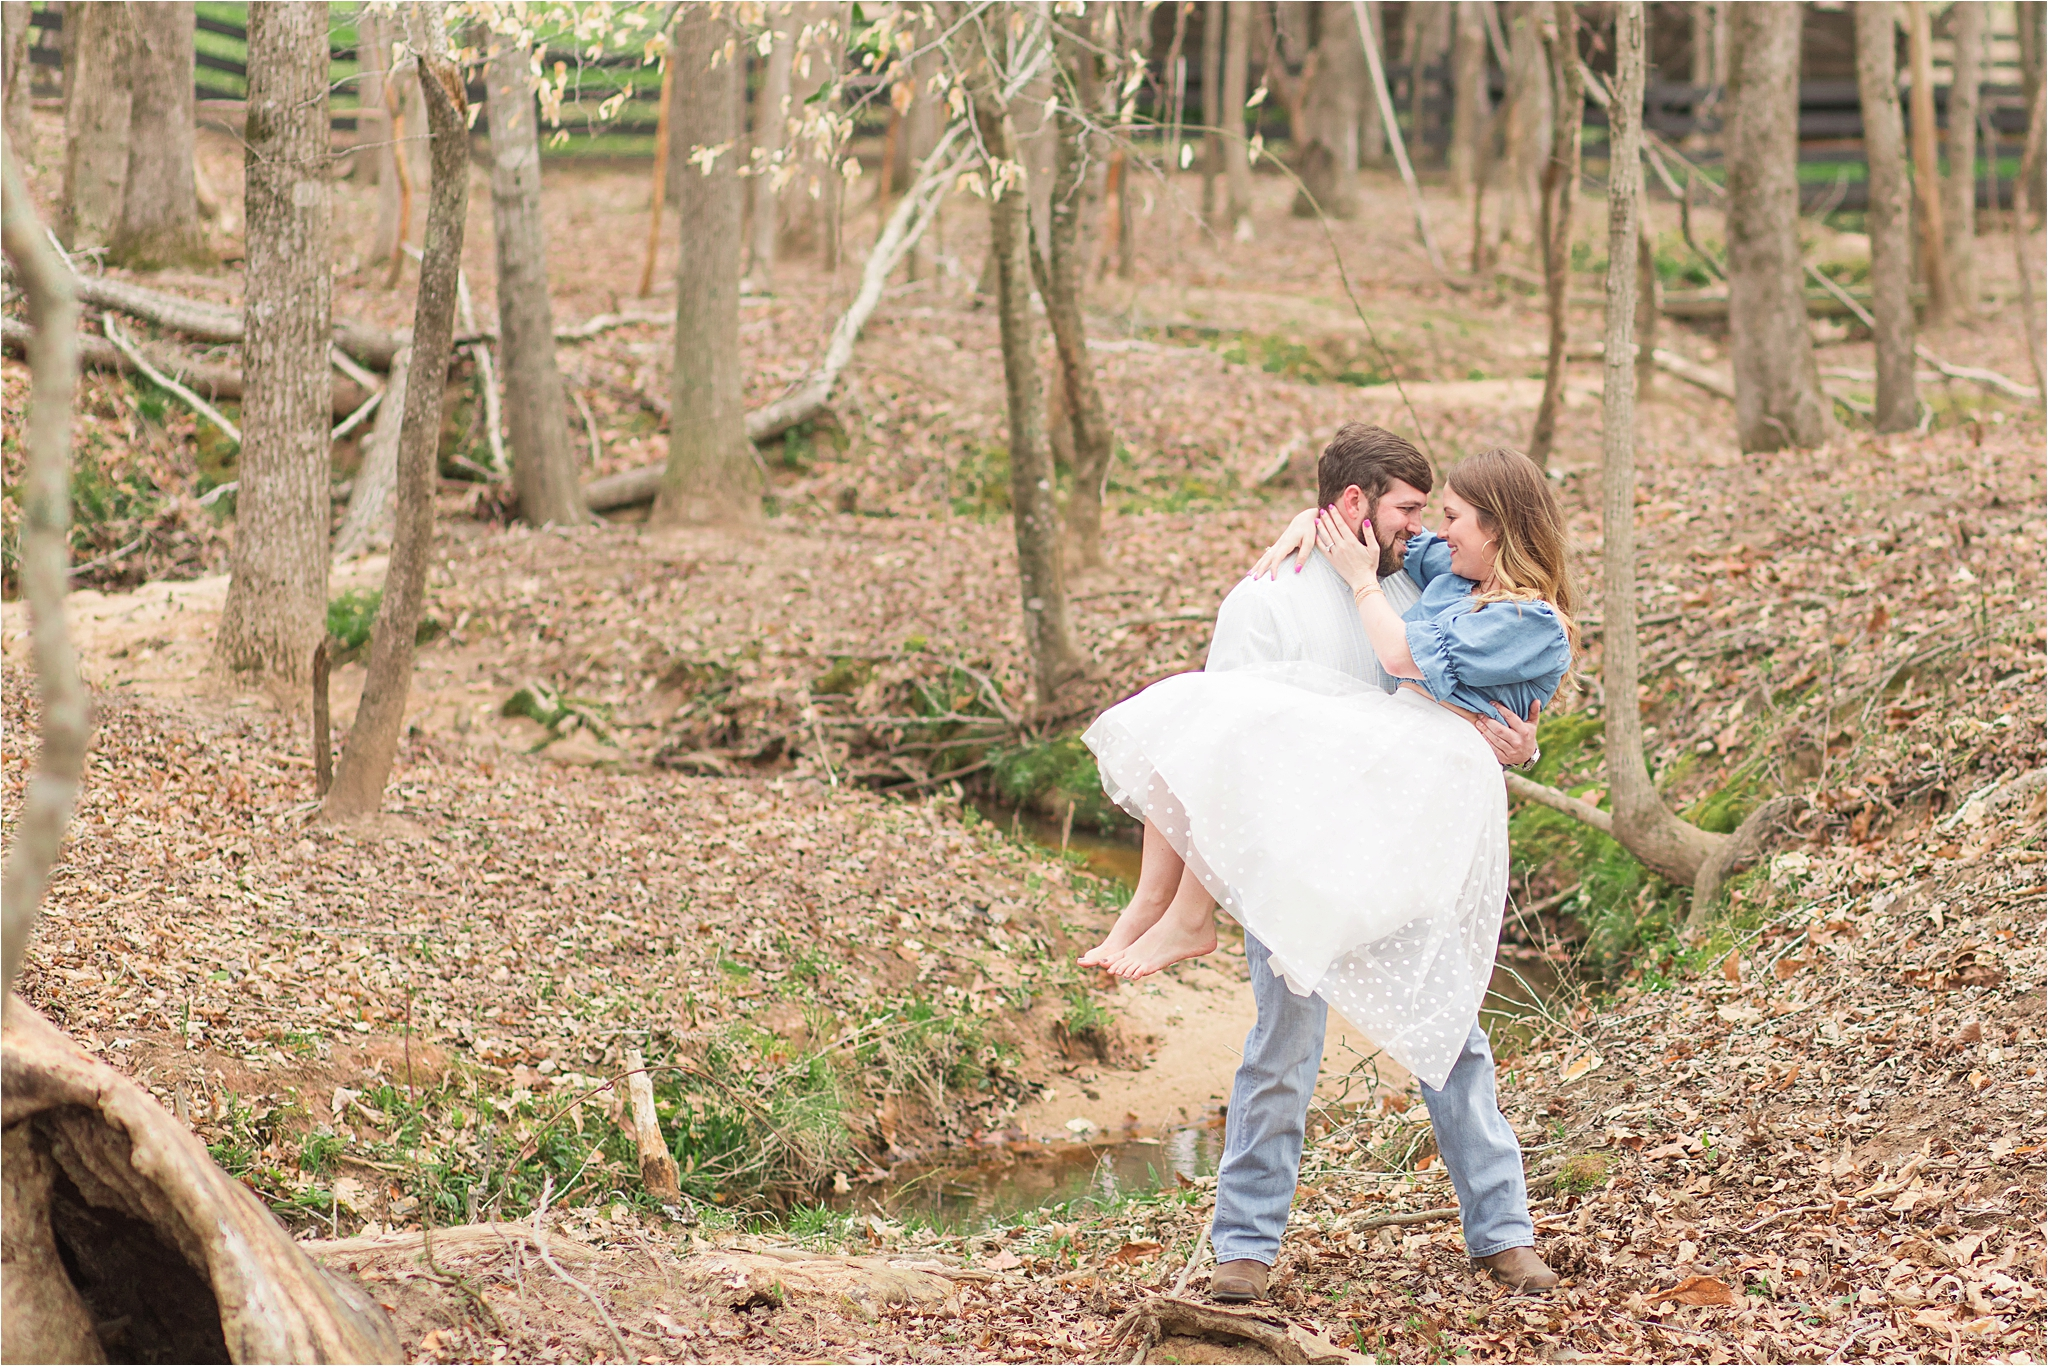 White Acre Farms Wedding Photographer Birmingham Alabama Cristen + Hunter-253